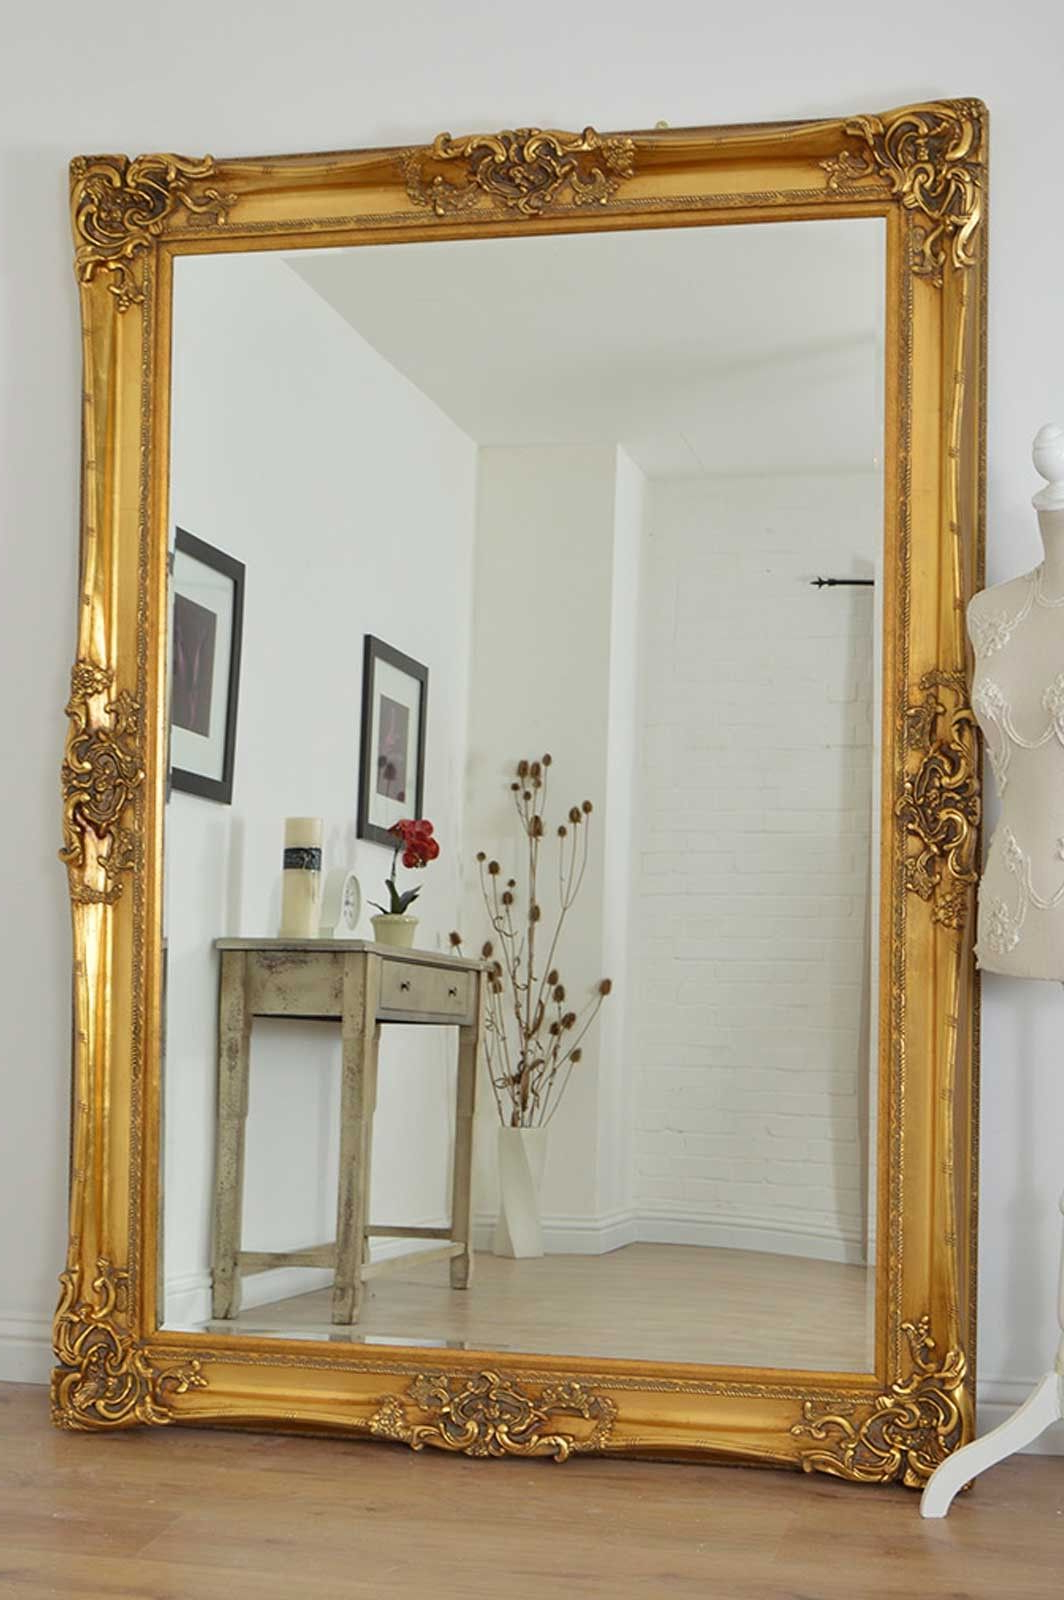 Trendy Standard Wall Mirrors Throughout Large Gold Very Ornate Antique Design Wall Mirror 7ft X 5ft (213cm X (View 11 of 20)